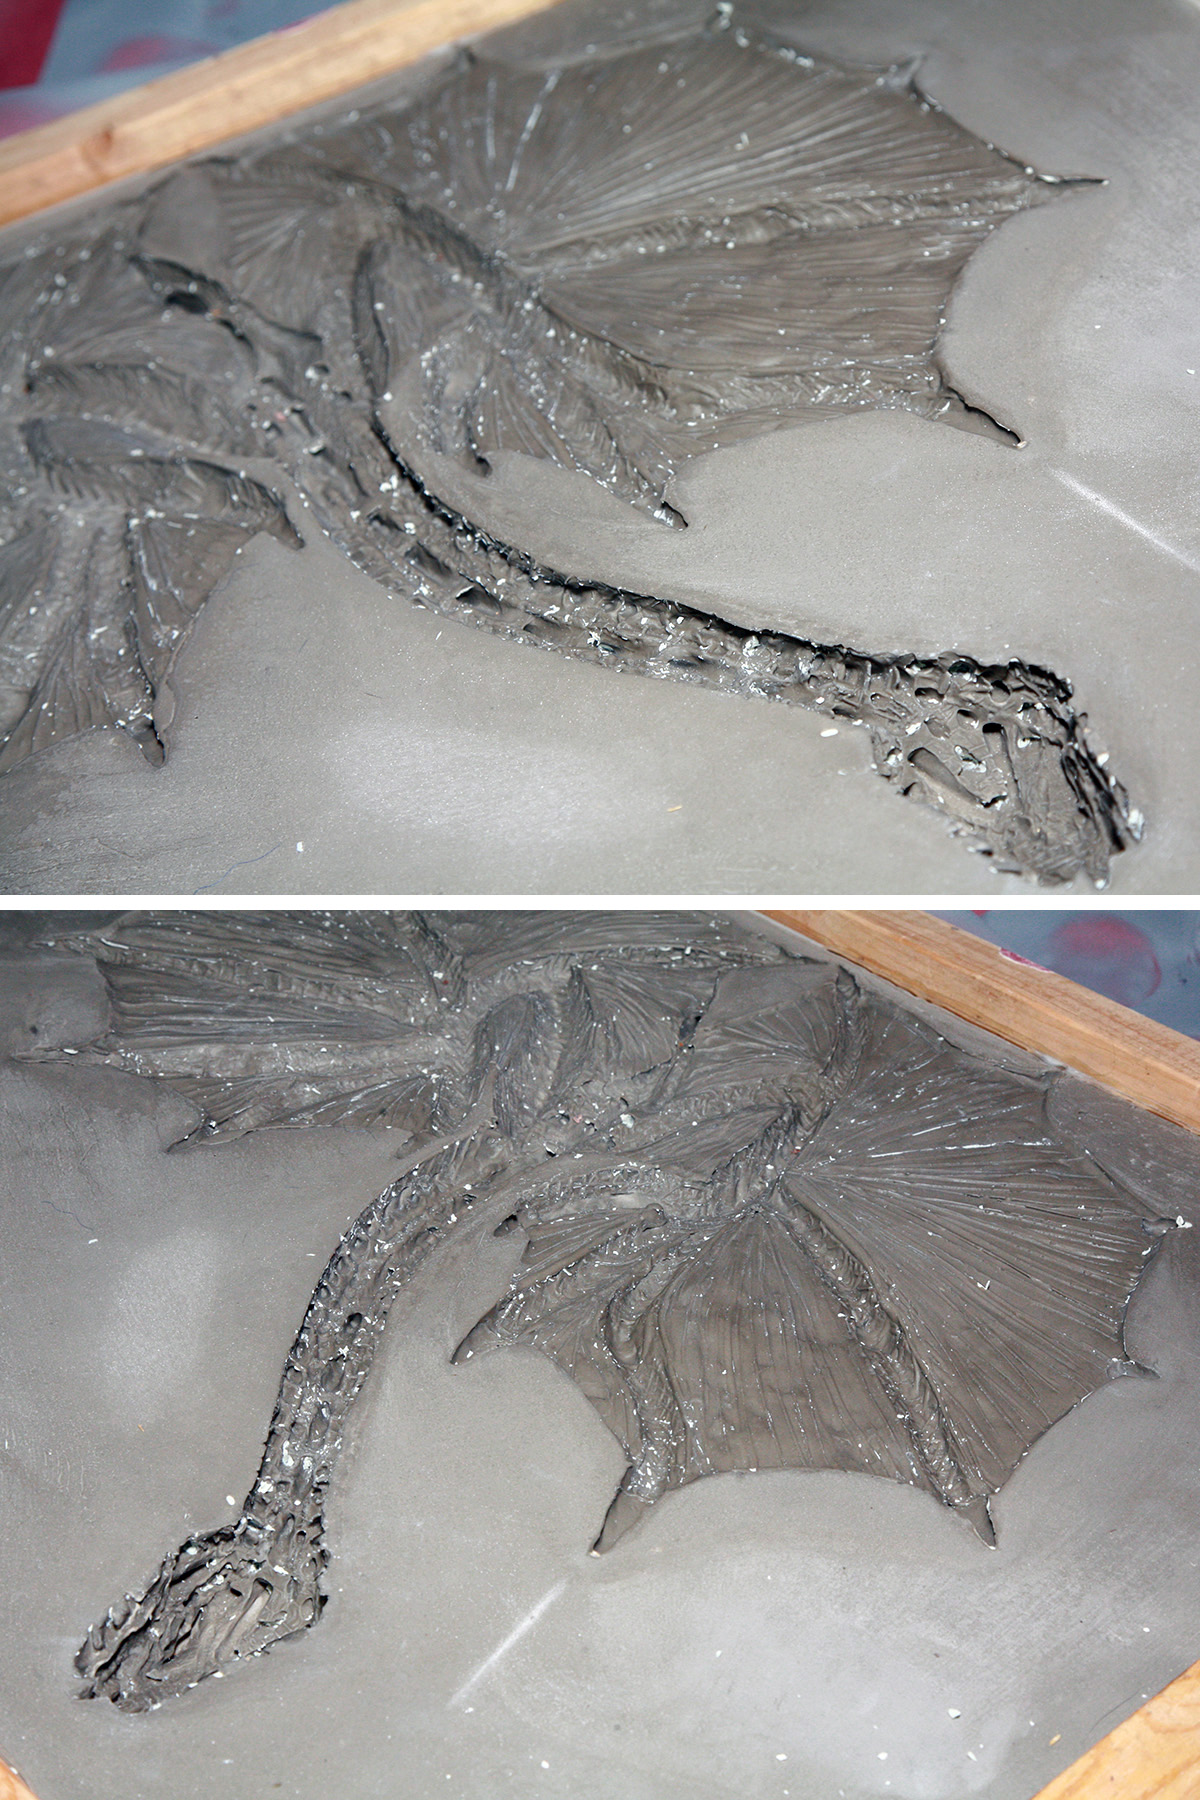 A two part compilation image showing different close up views of the plaster mold that will be used to make the dragon top.